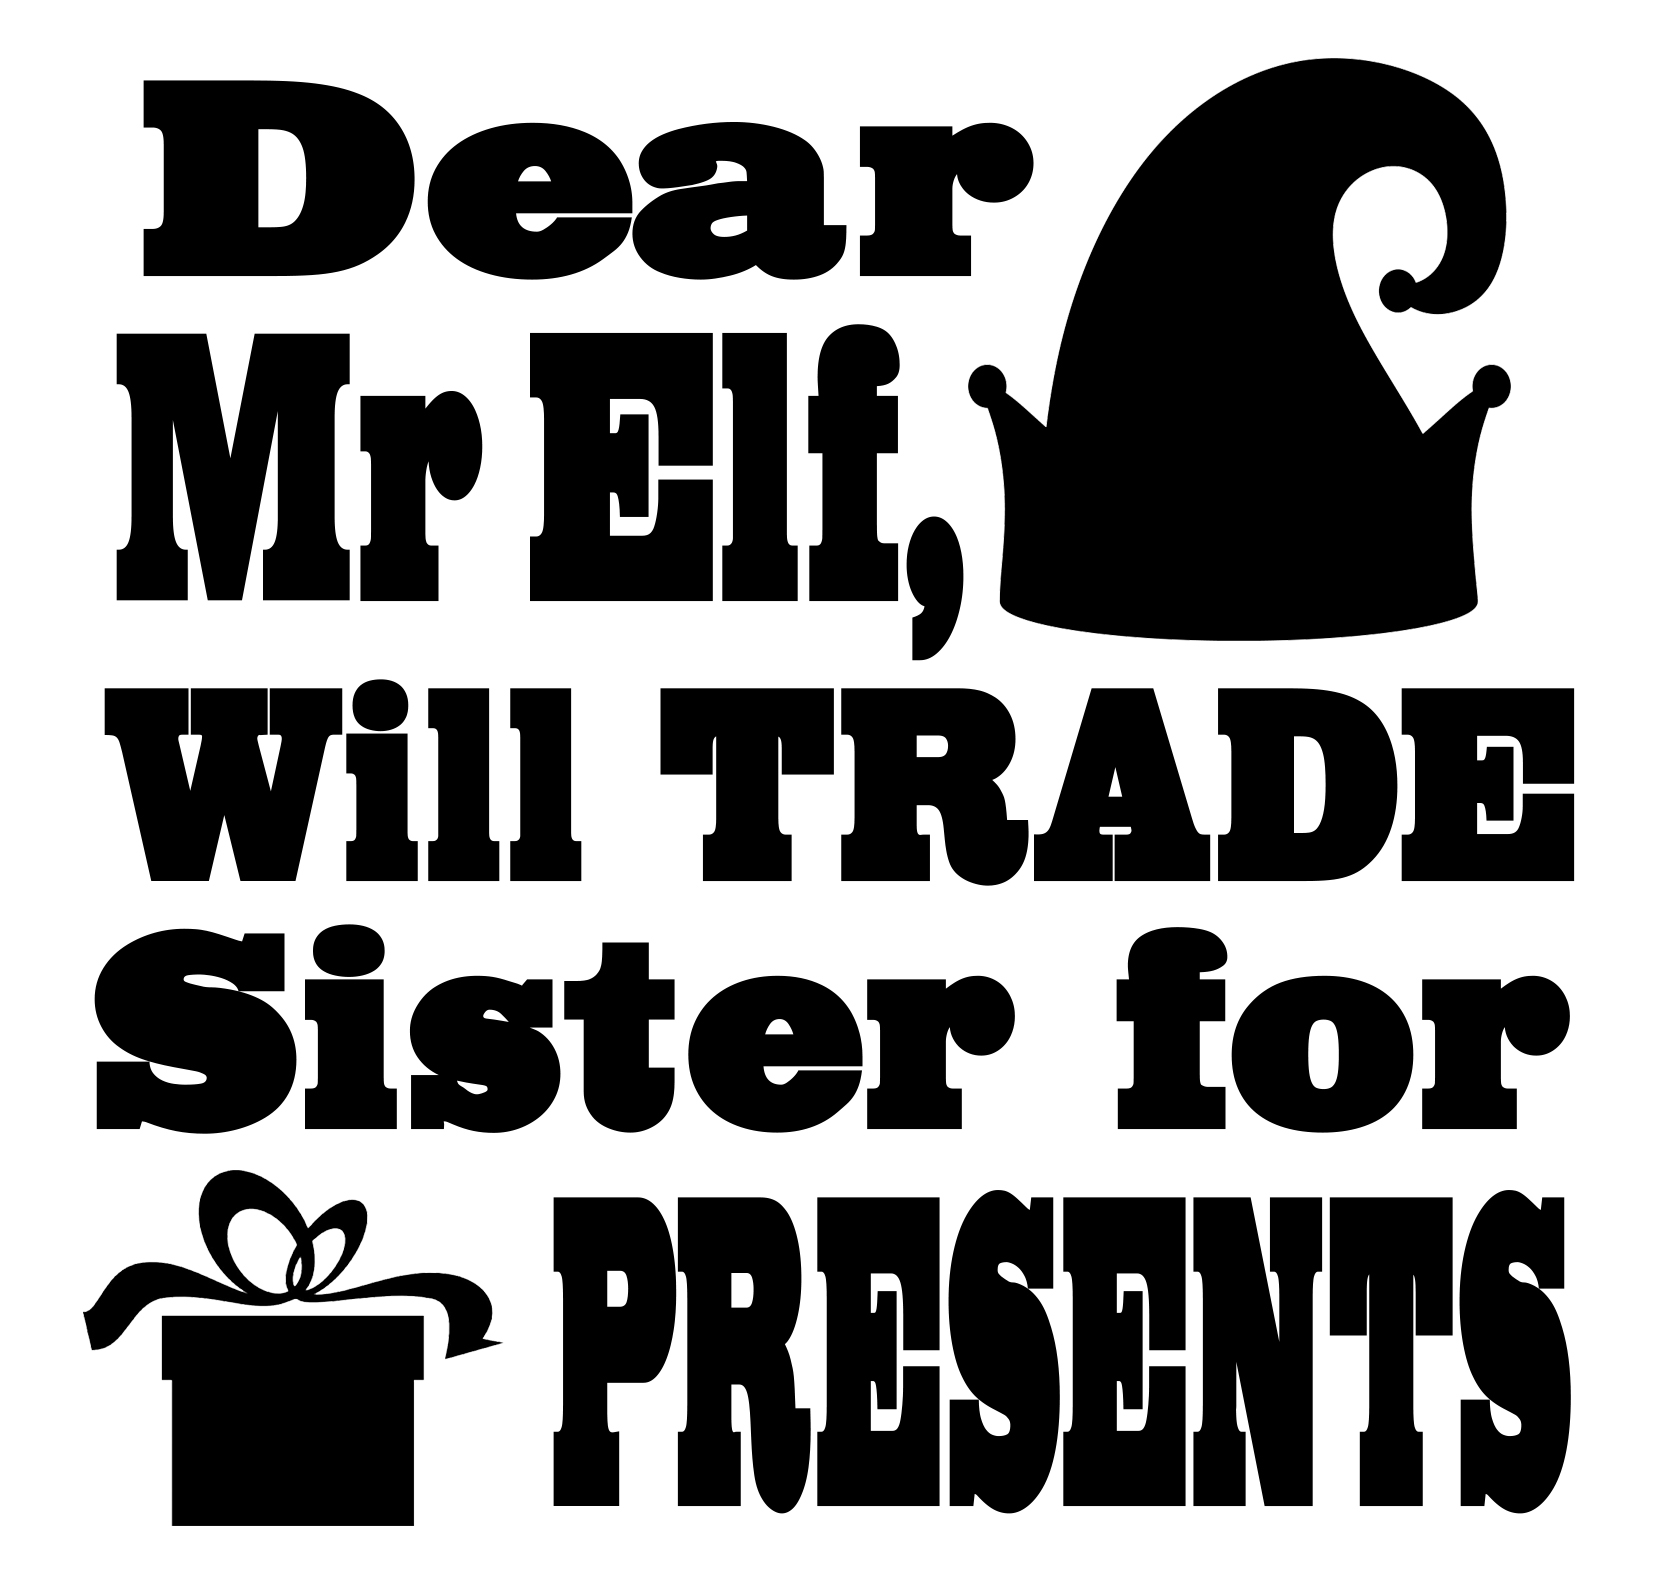 Free Trade for Sister SVG File